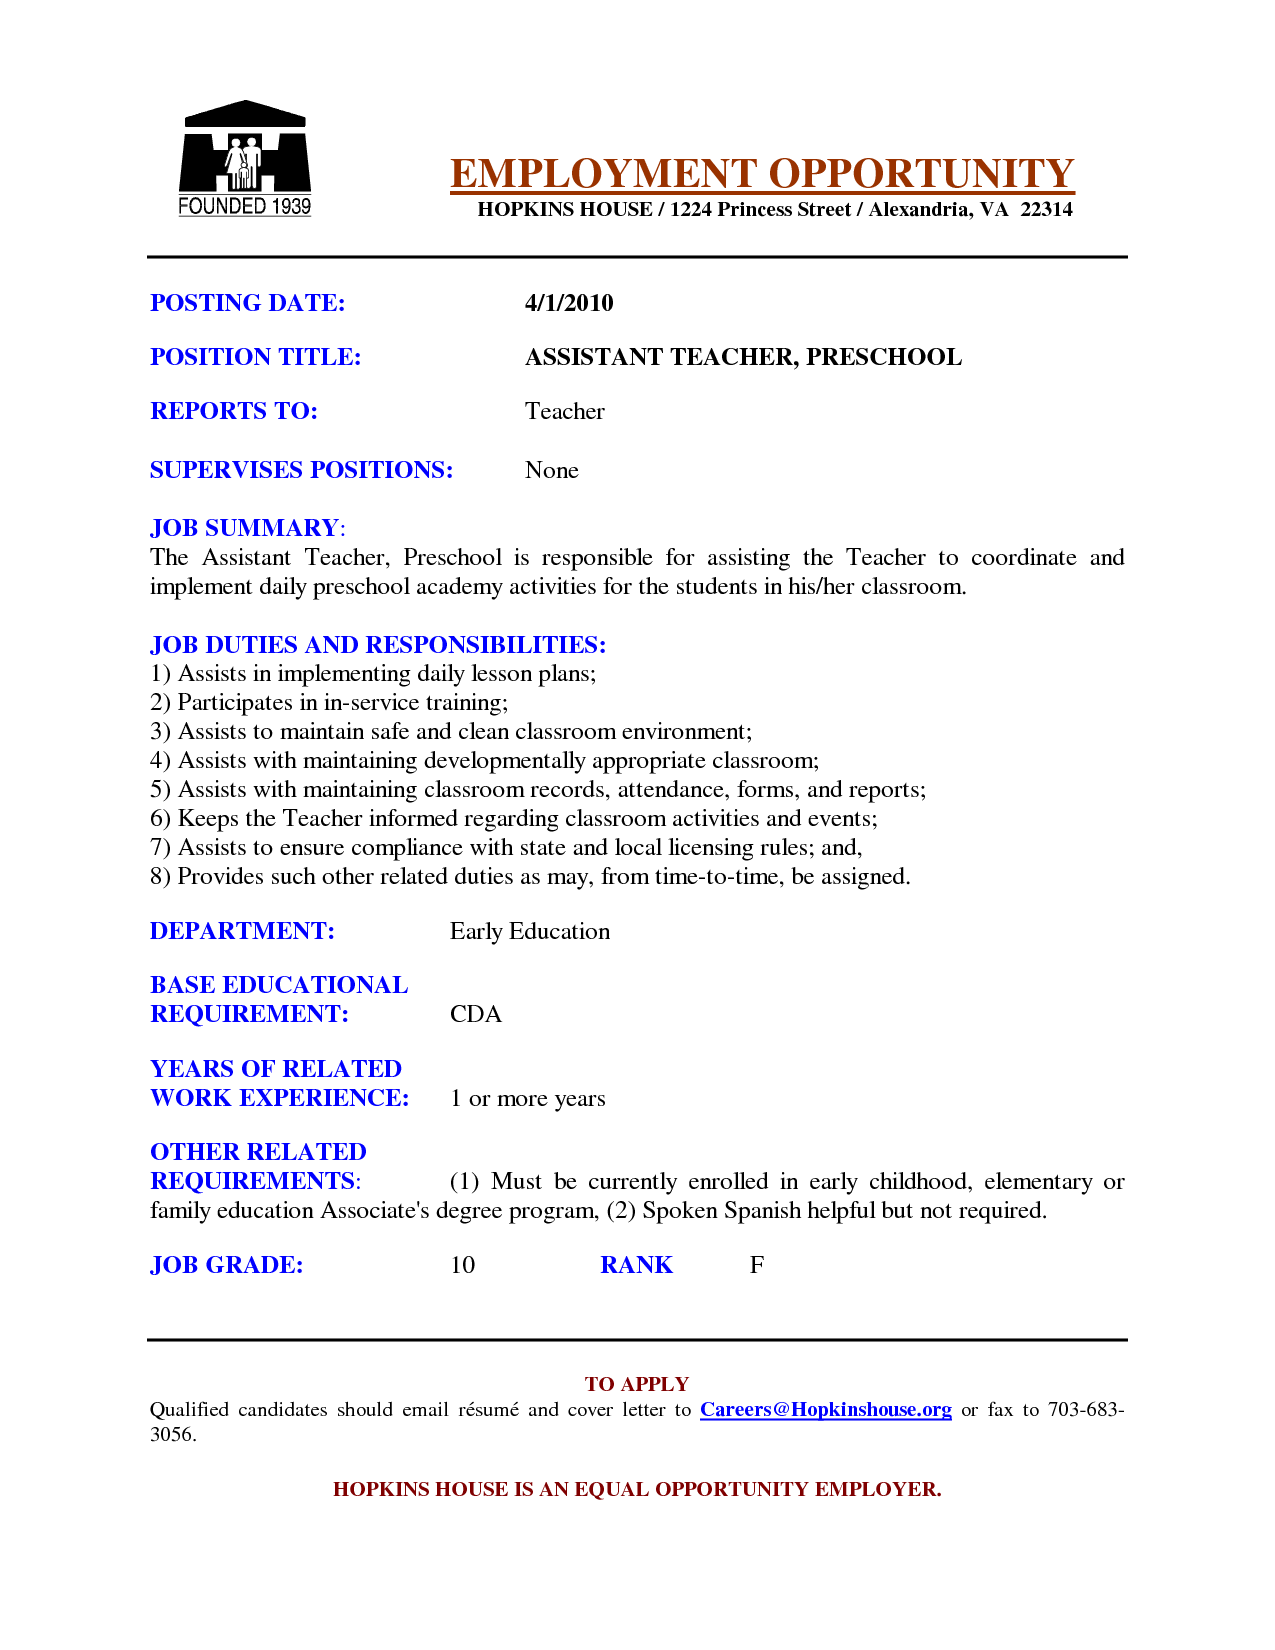 Google Resume Templates Preschool Assistant Teacher Resume Examples  Google Search